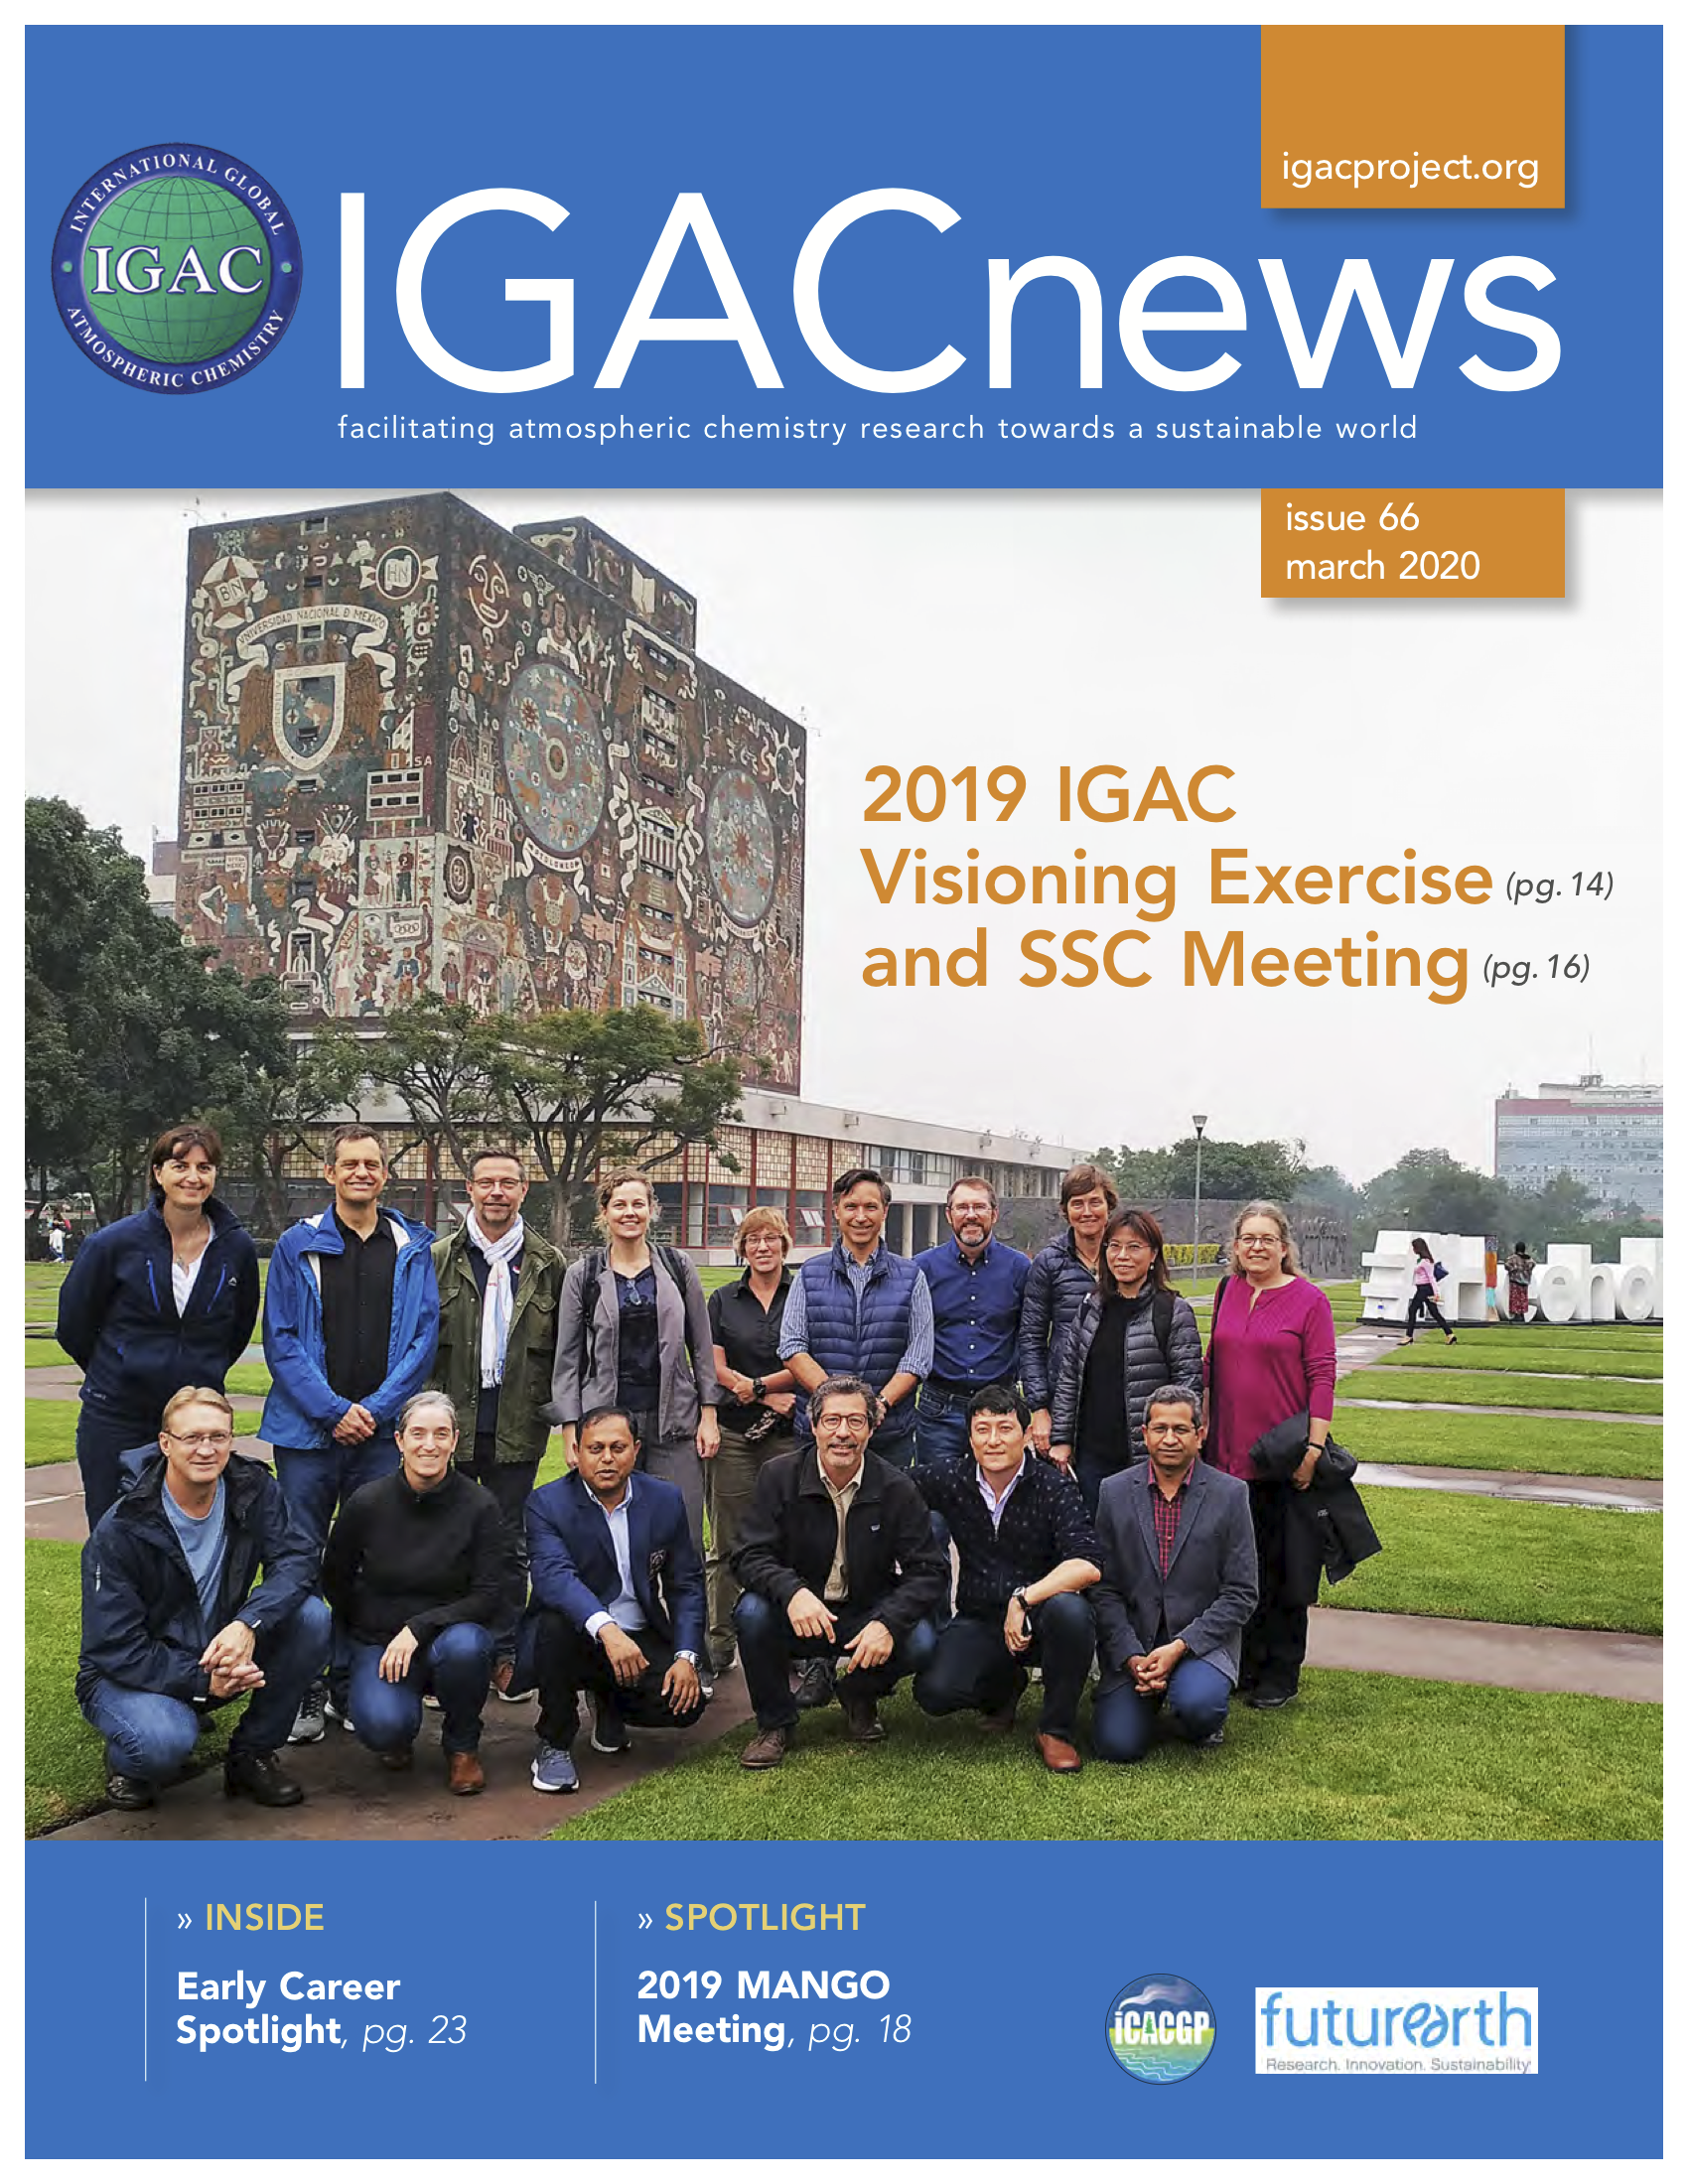 IGACnews Issue 66 Mar 2020 Cover Image